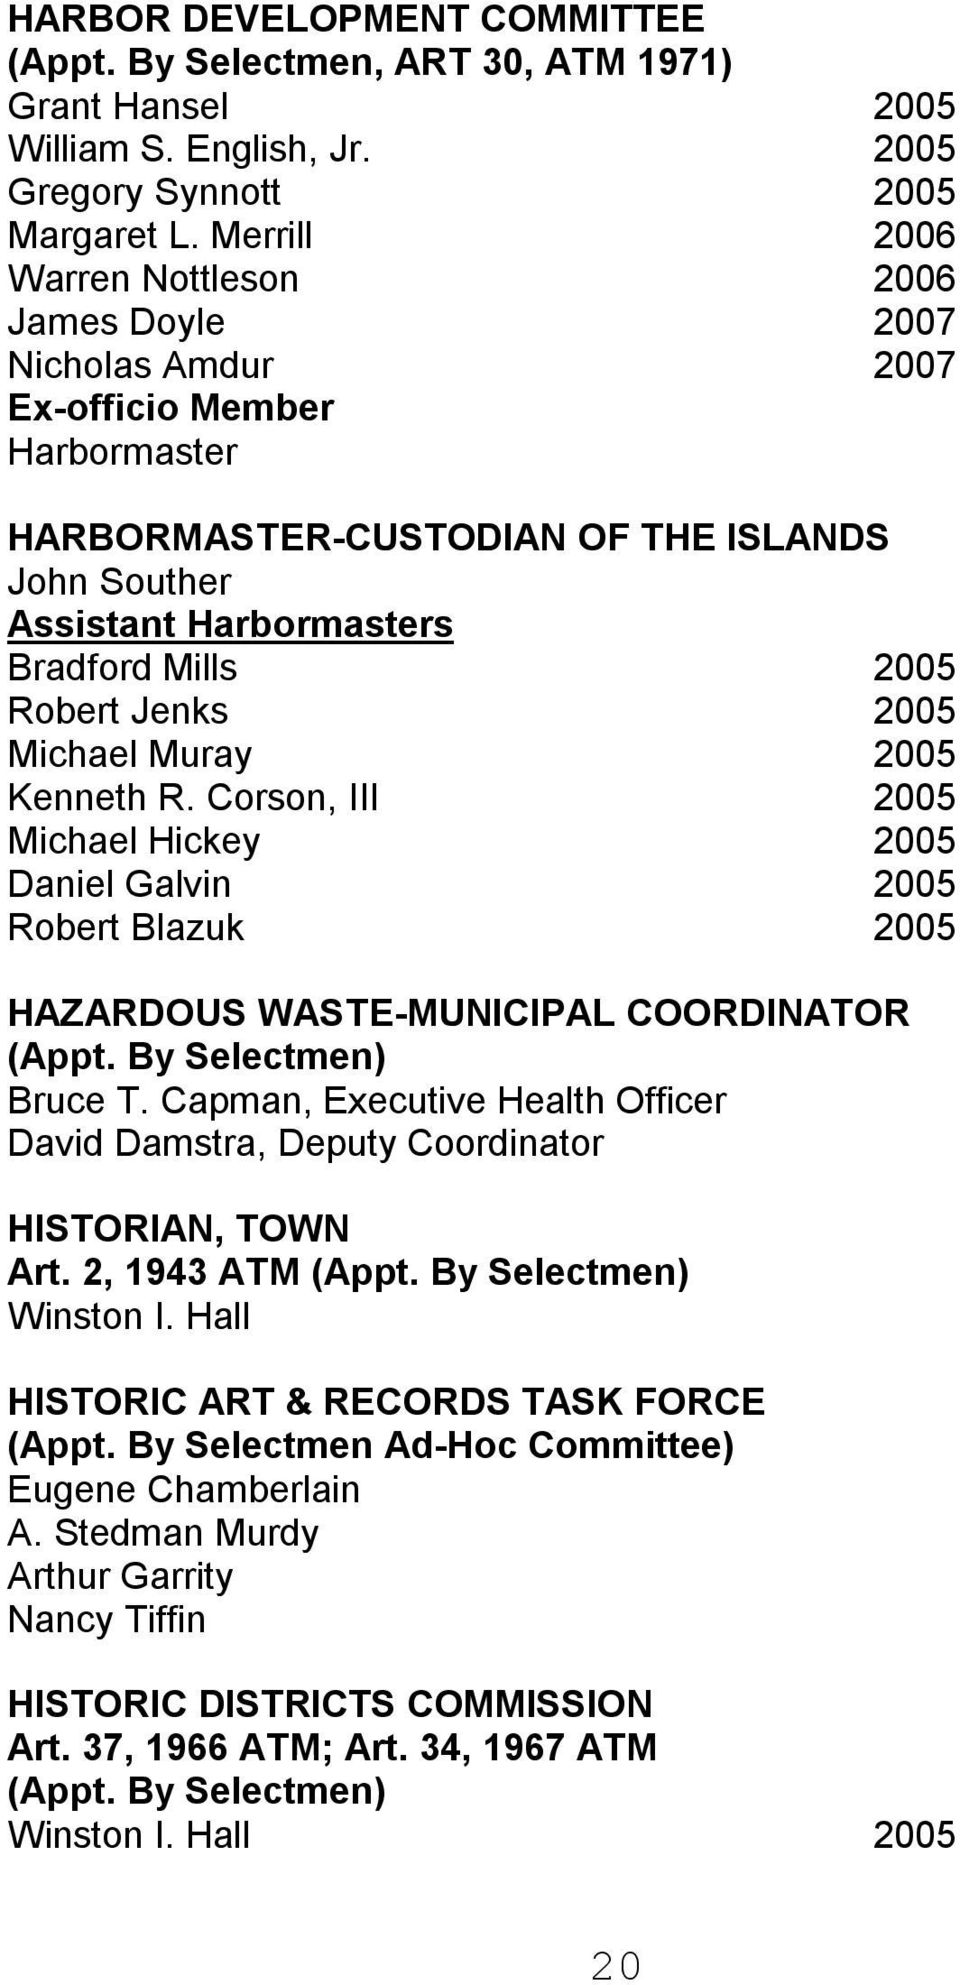 Robert Jenks 2005 Michael Muray 2005 Kenneth R. Corson, III 2005 Michael Hickey 2005 Daniel Galvin 2005 Robert Blazuk 2005 HAZARDOUS WASTE MUNICIPAL COORDINATOR (Appt. By Selectmen) Bruce T.